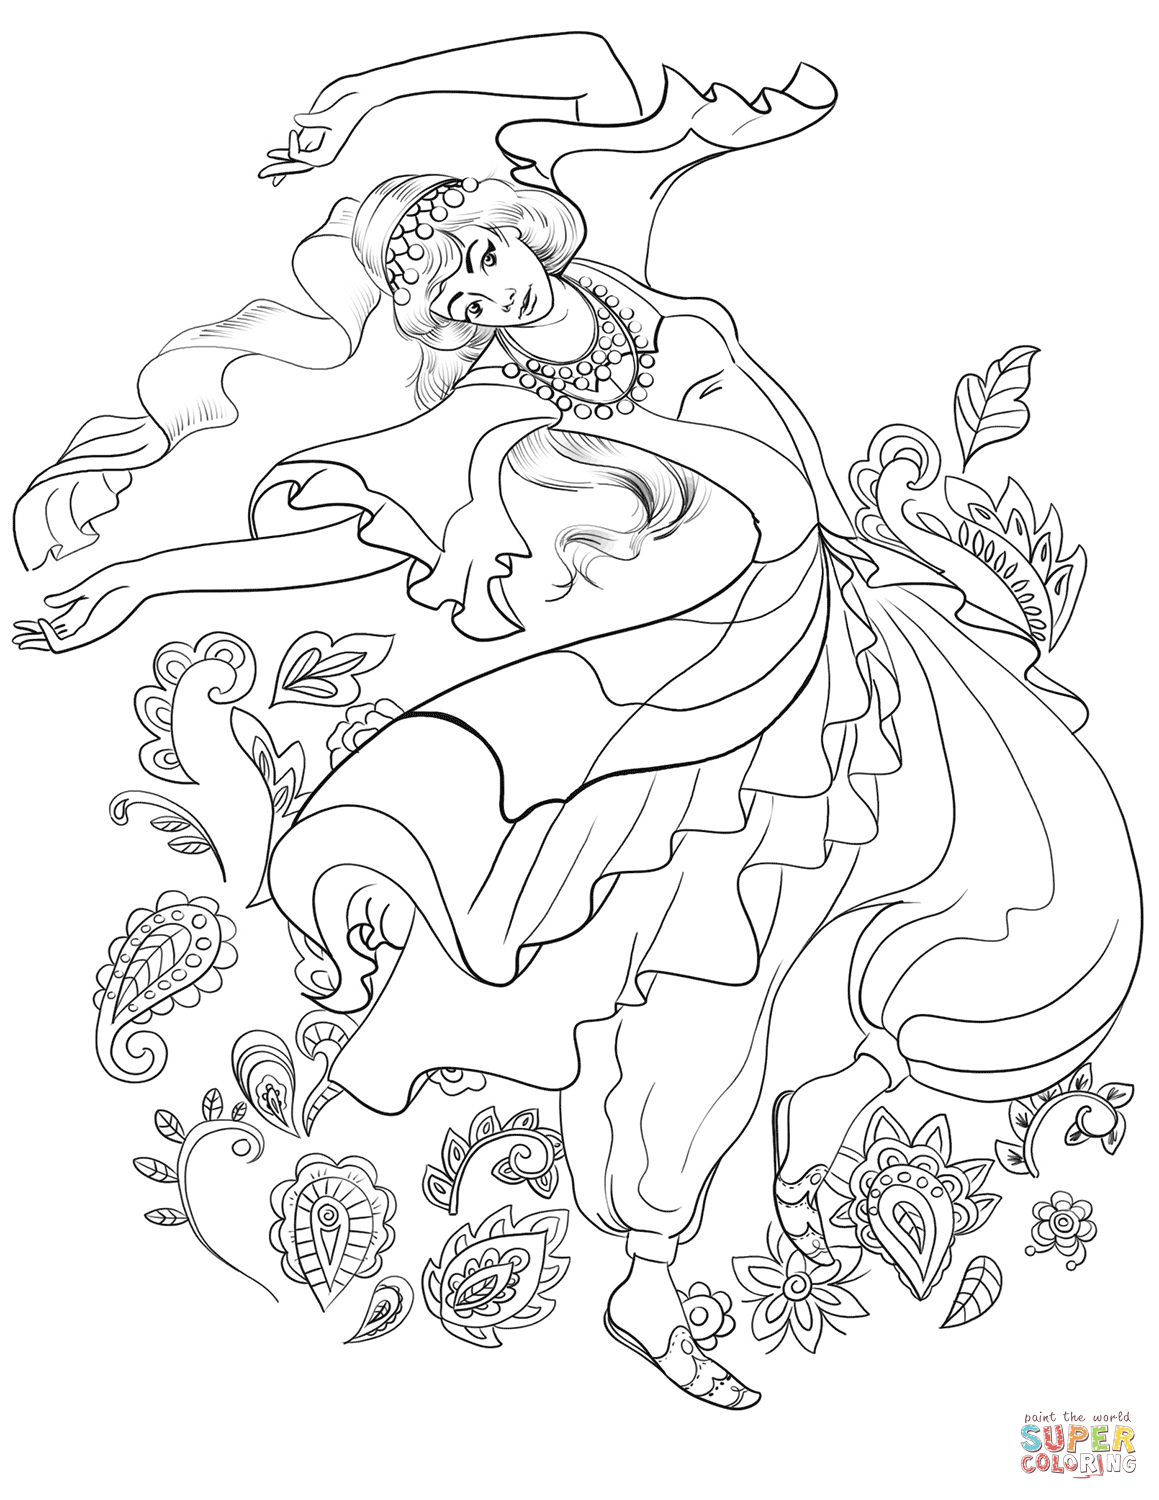 Turkish Woman Dancing In Traditional Dress Coloring Page